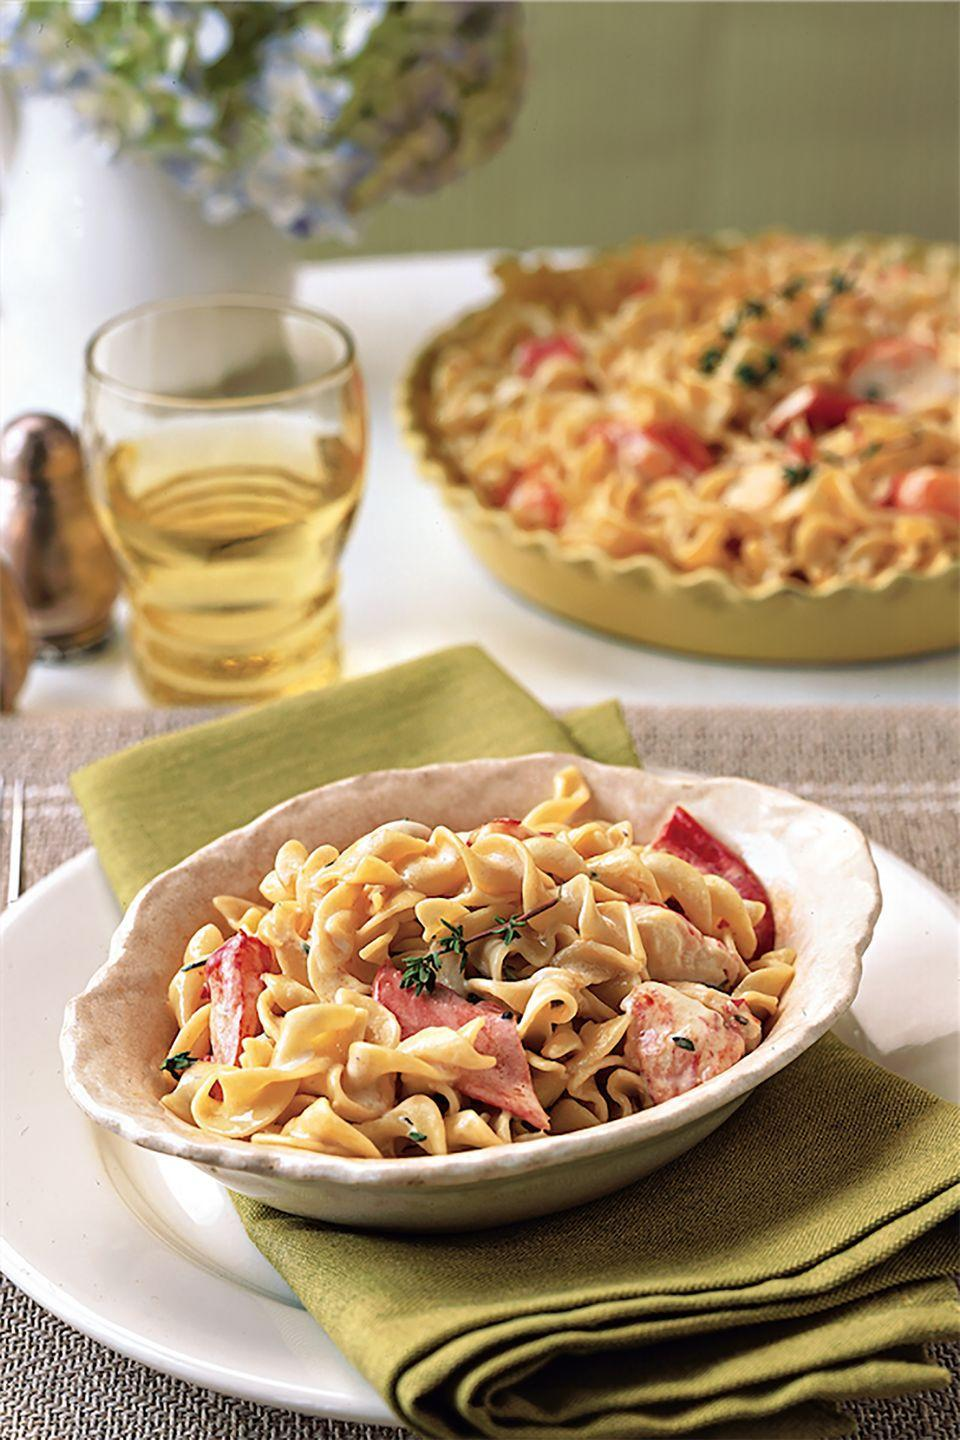 """<p>This elegant casserole was inspired by the tuna-noodle childhood favorite. It can be baked in individual casseroles or in one large dish and served buffet style. </p><p><strong><a href=""""https://www.countryliving.com/food-drinks/recipes/a1704/lobster-noodle-casserole-3829/"""" rel=""""nofollow noopener"""" target=""""_blank"""" data-ylk=""""slk:Get the recipe"""" class=""""link rapid-noclick-resp"""">Get the recipe</a>.</strong></p>"""